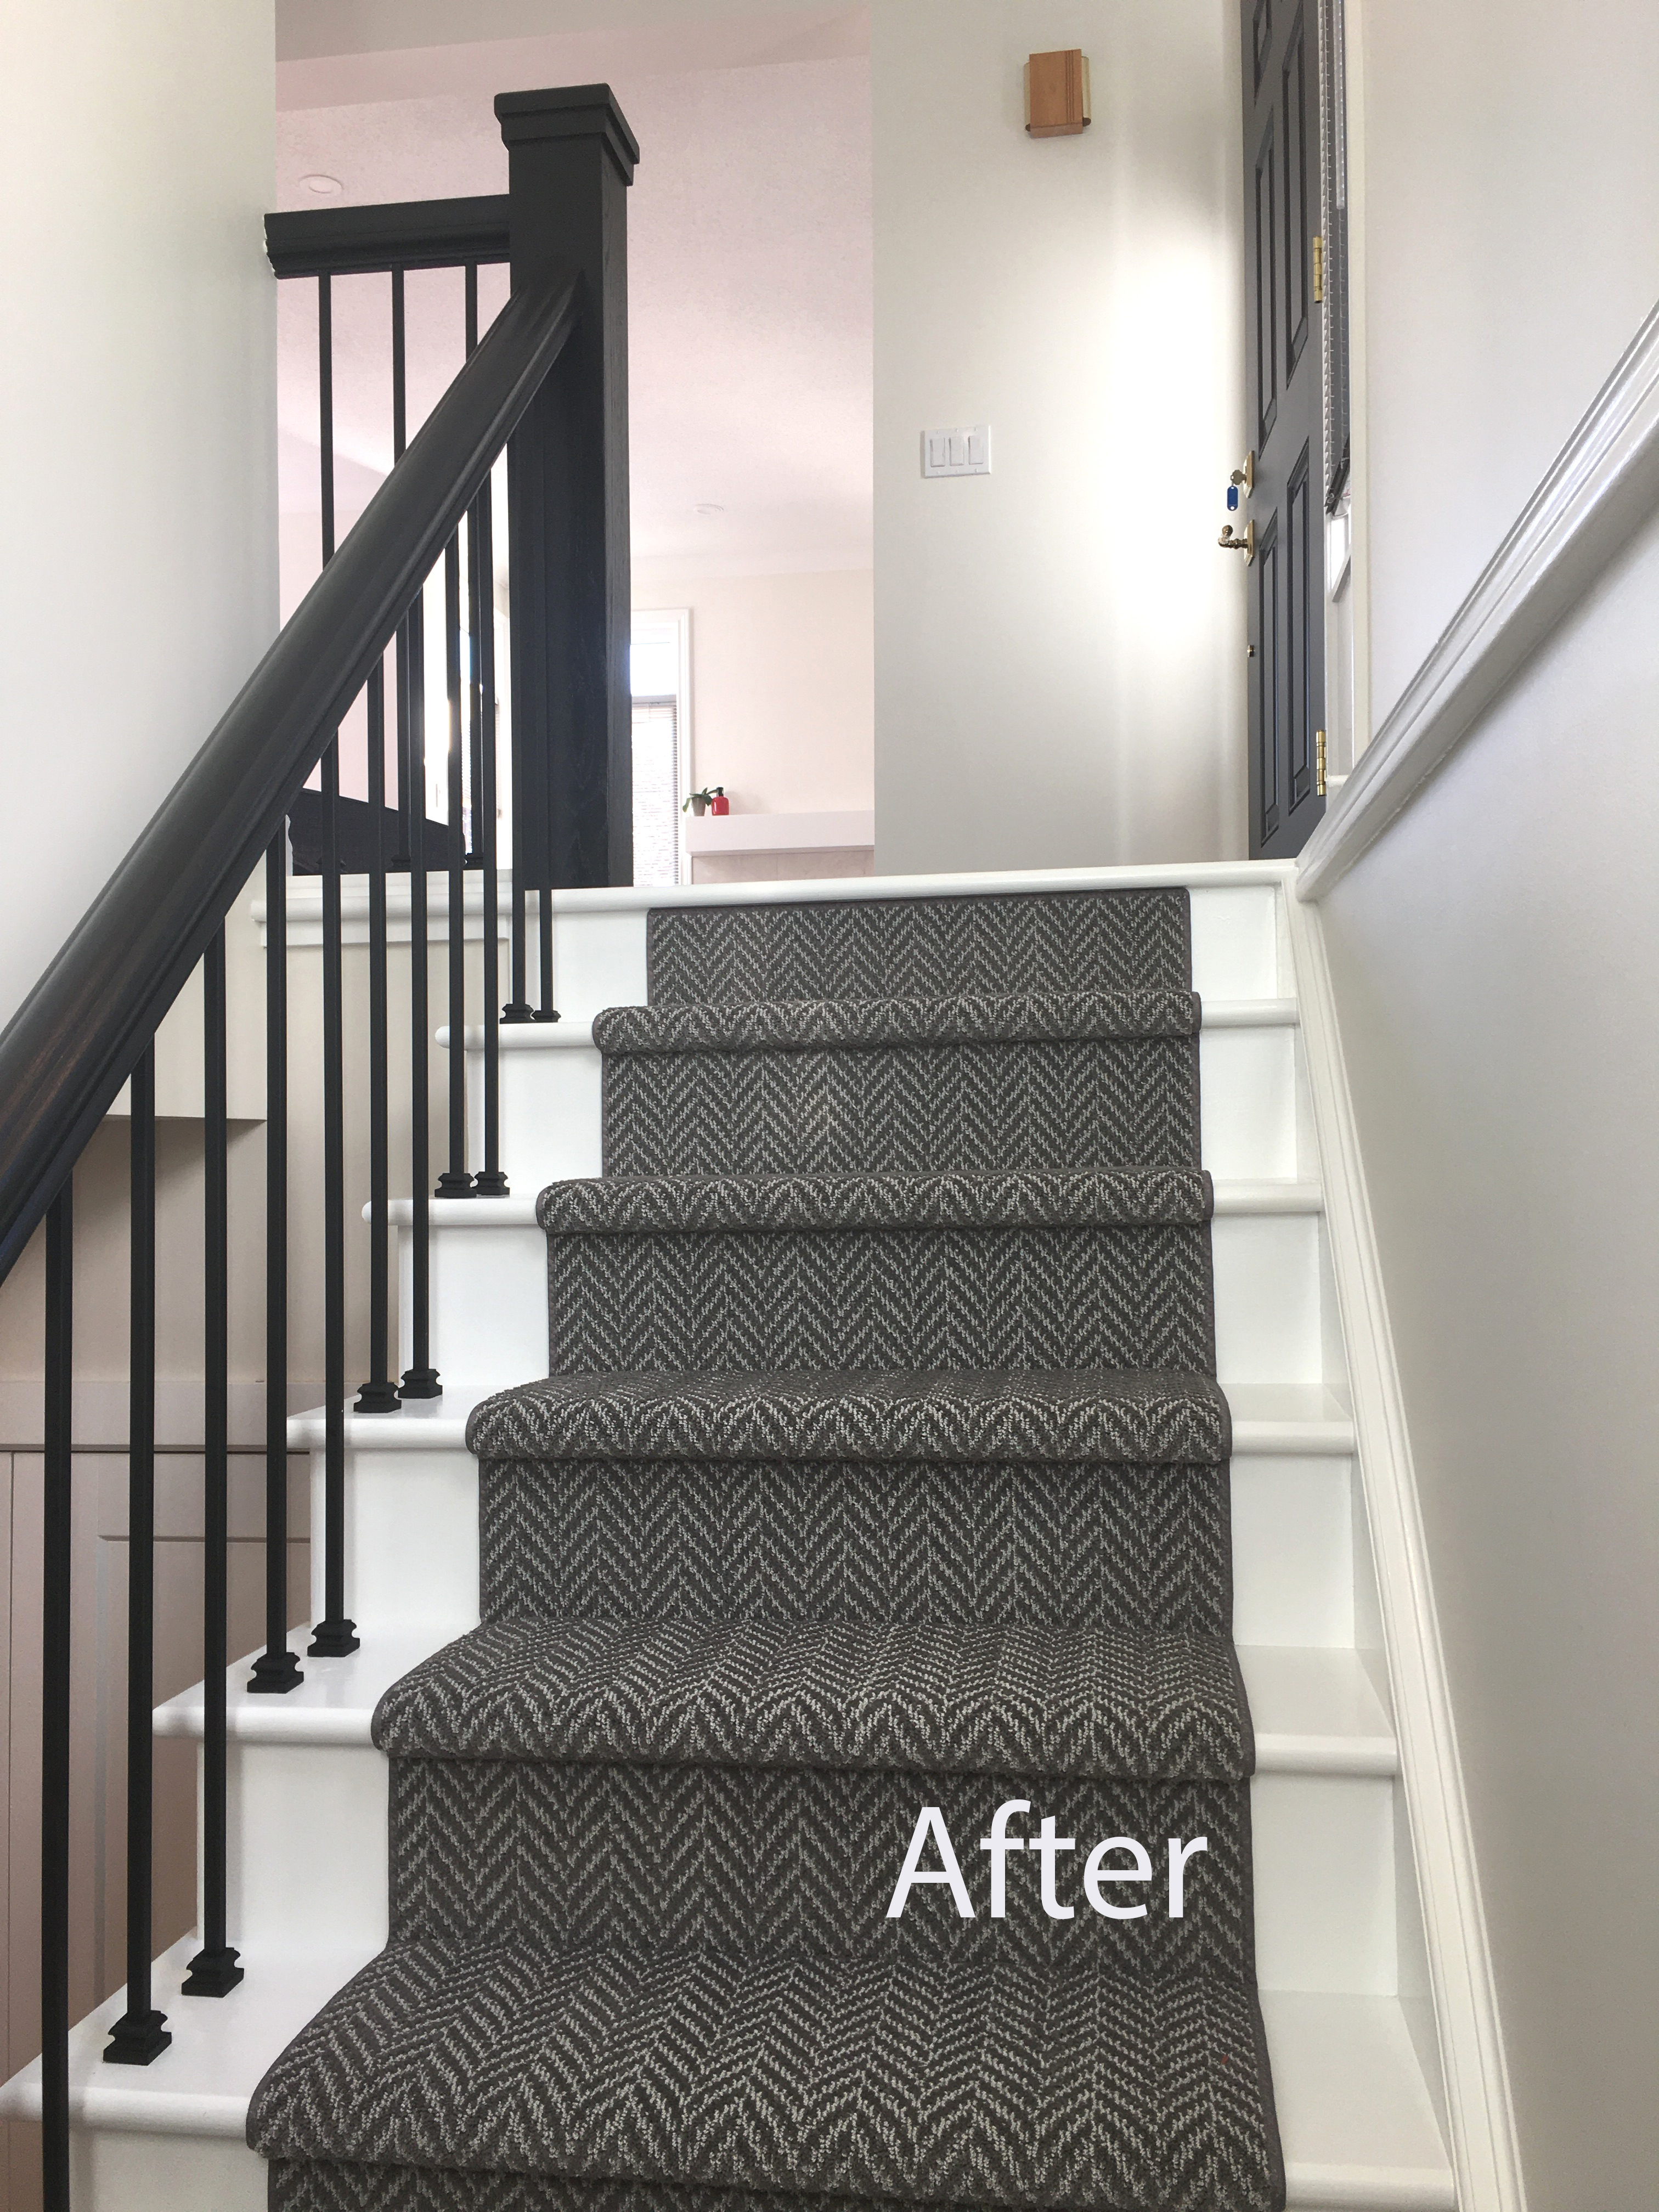 Stair-remodel-After-1